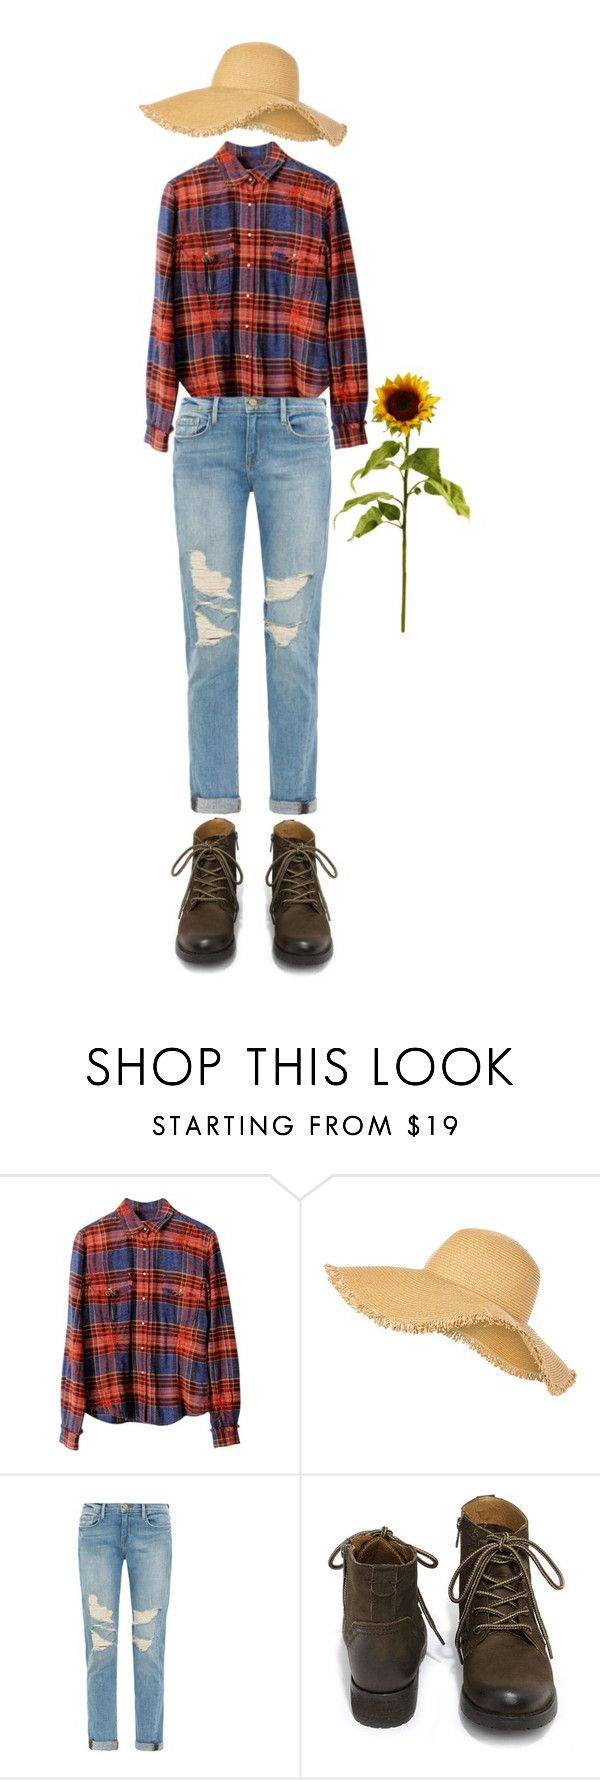 """DIY Scarecrow Costume"" by randomfashioncollections ❤ liked on Polyvore featuring Ryan Michael, Frame Denim, Steve Madden, women's clothing, women, female, woman, misses, juniors and scarecrow"